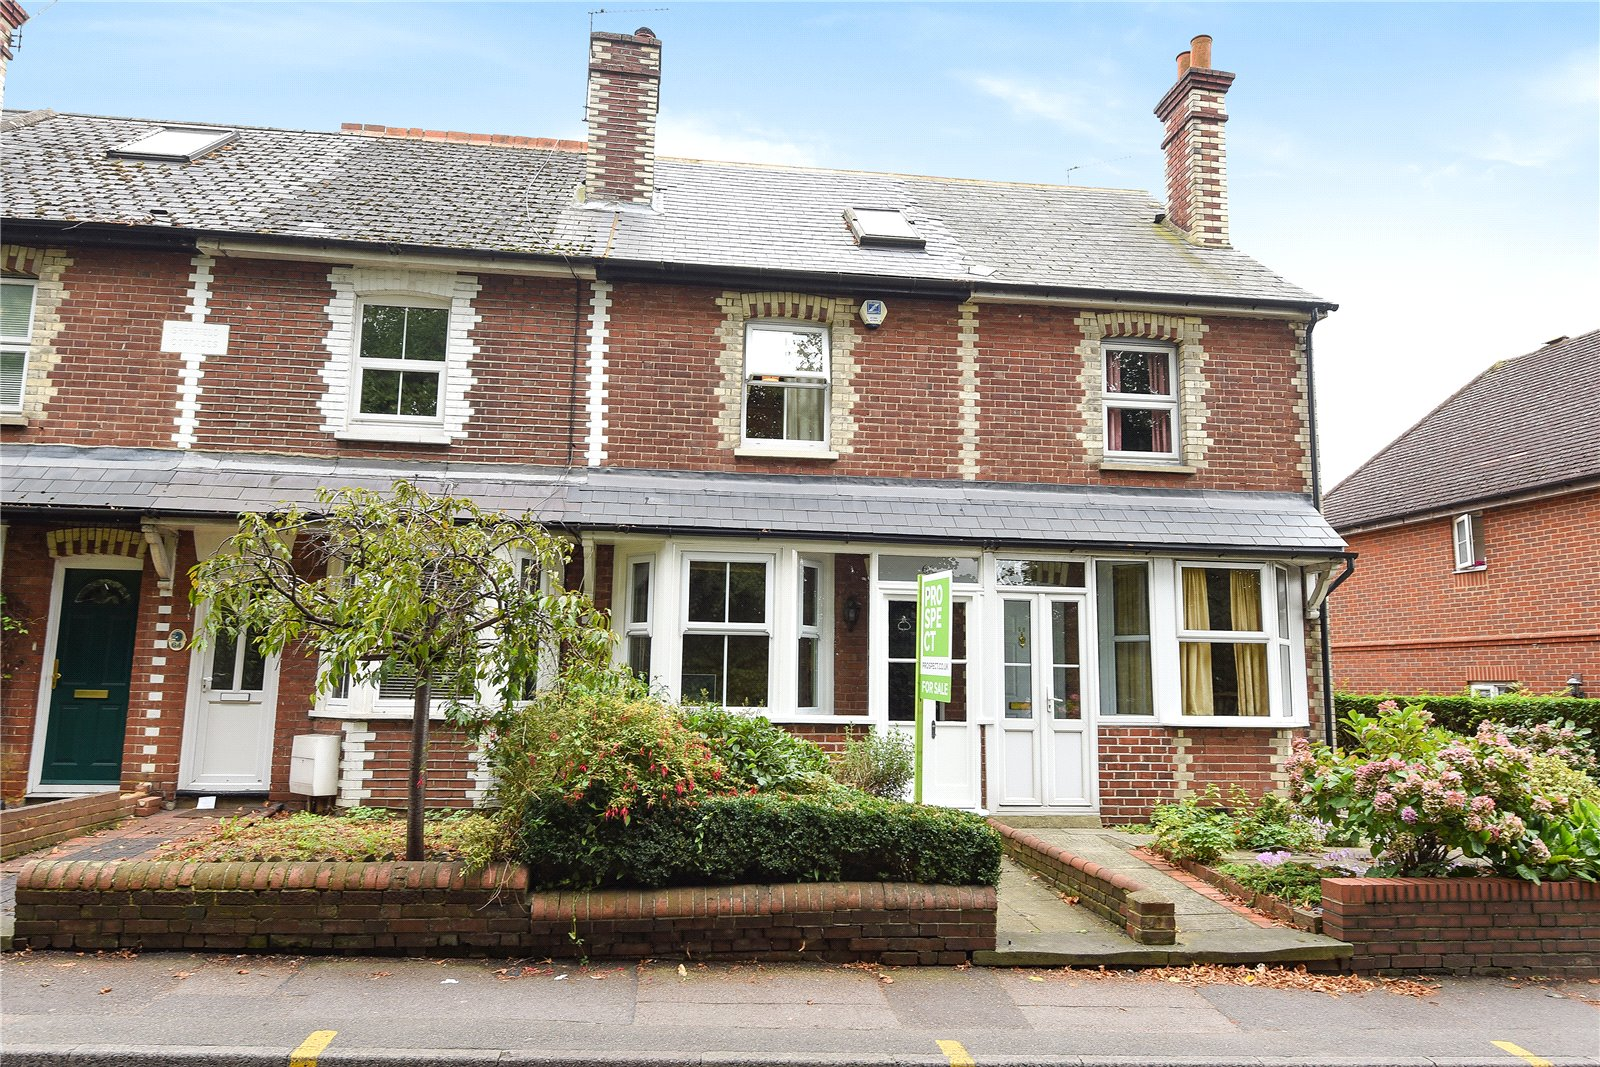 3 Bedrooms Terraced House for sale in Denmark Street, Wokingham, Berkshire, RG40